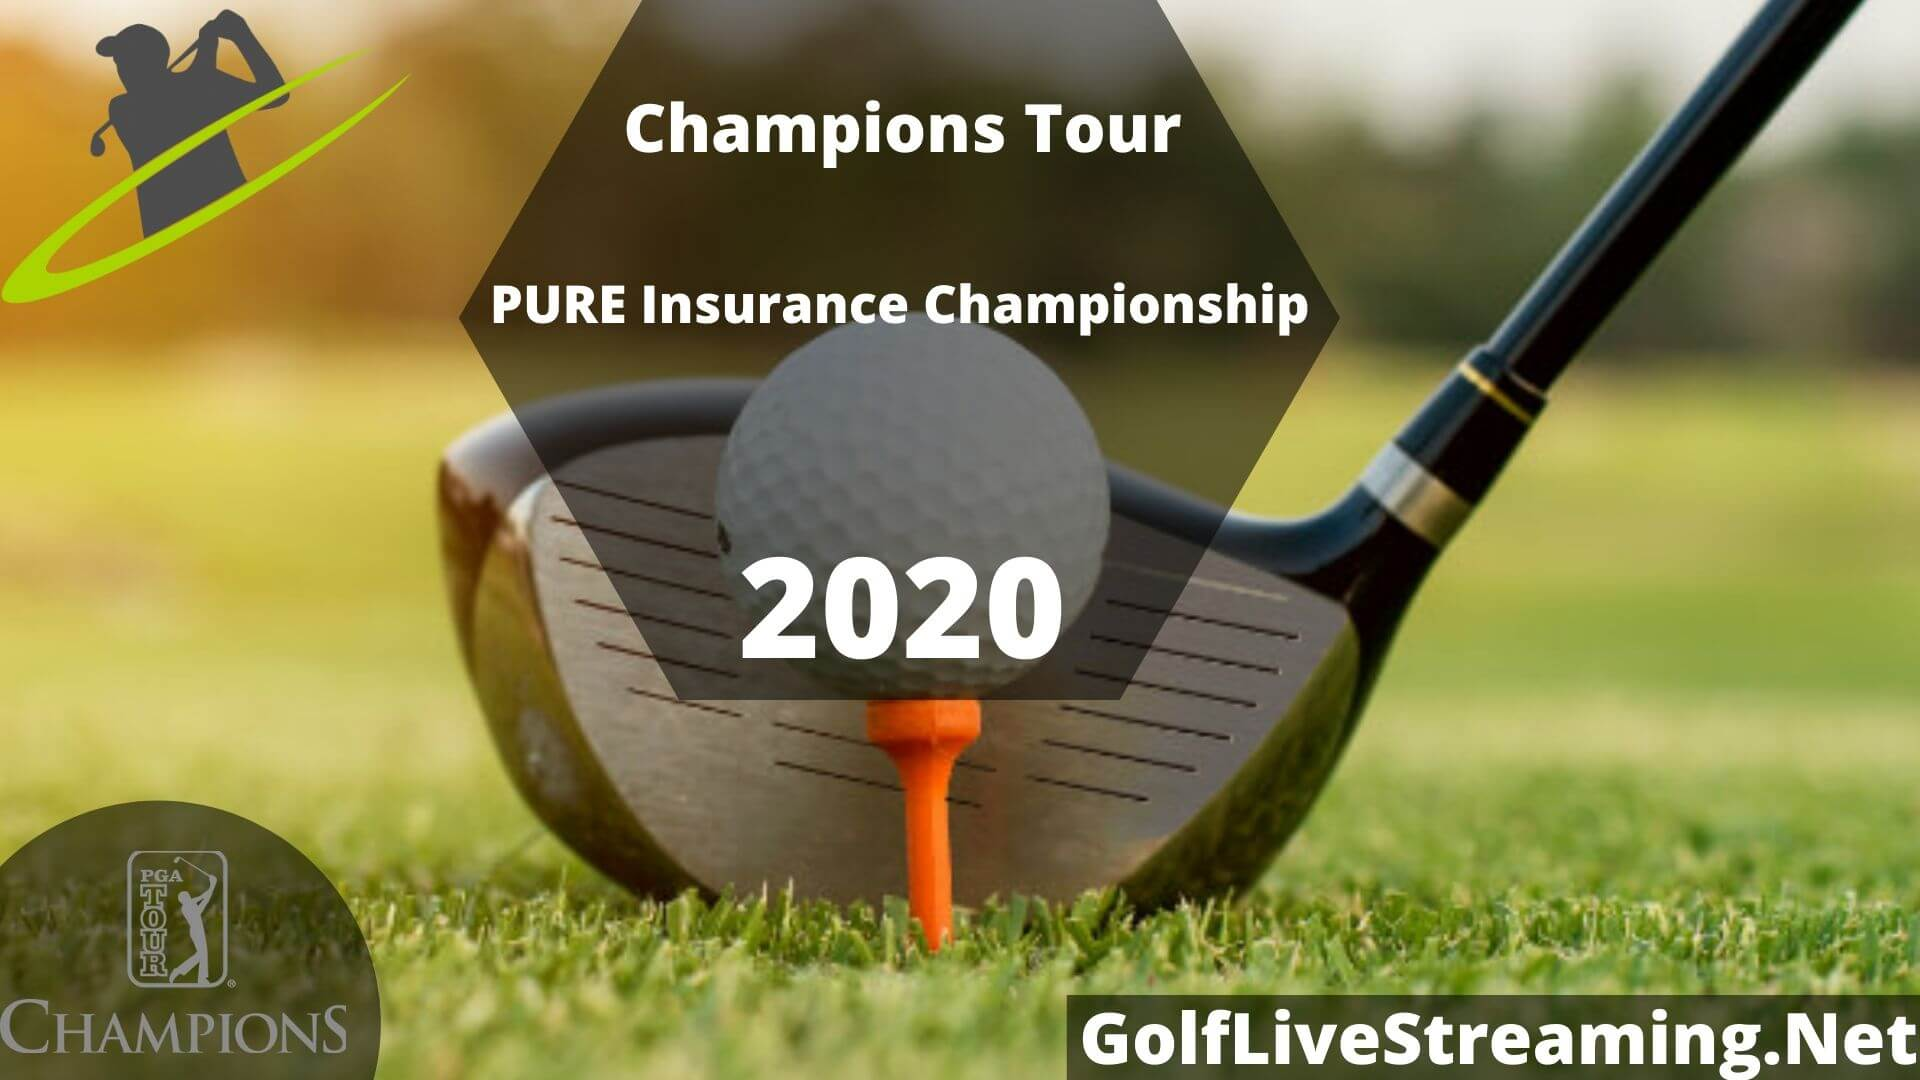 PURE Insurance Championship Live Stream 2020 | Champions Tour Round 1